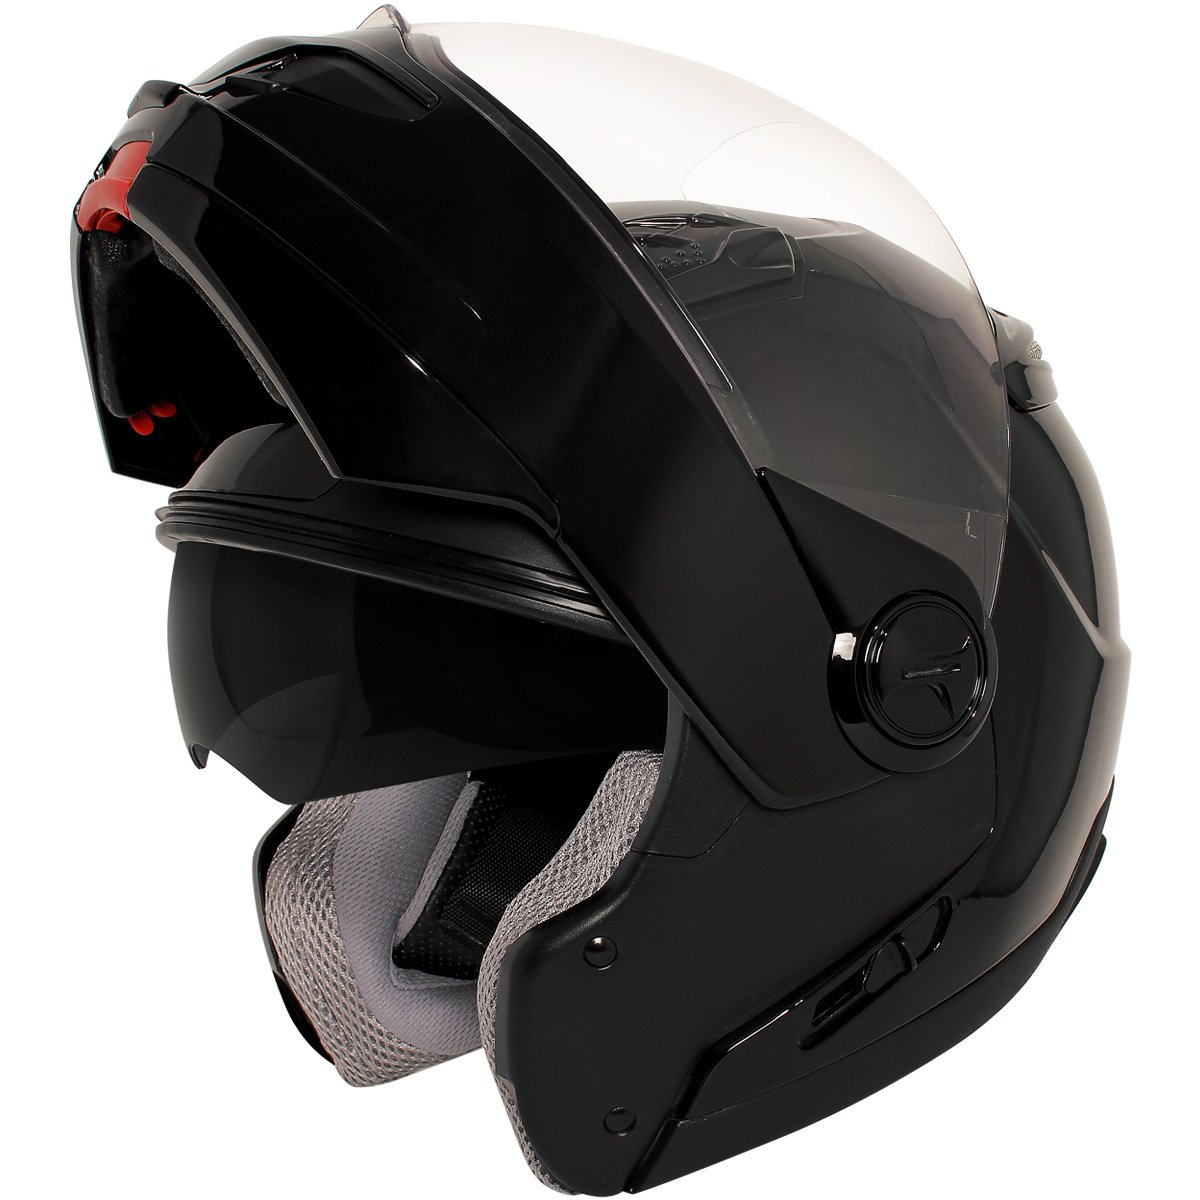 9ae22b69 Amazon.com: Hawk ST-1198 Transition 2 in 1 Black Modular Helmet - Large:  Automotive